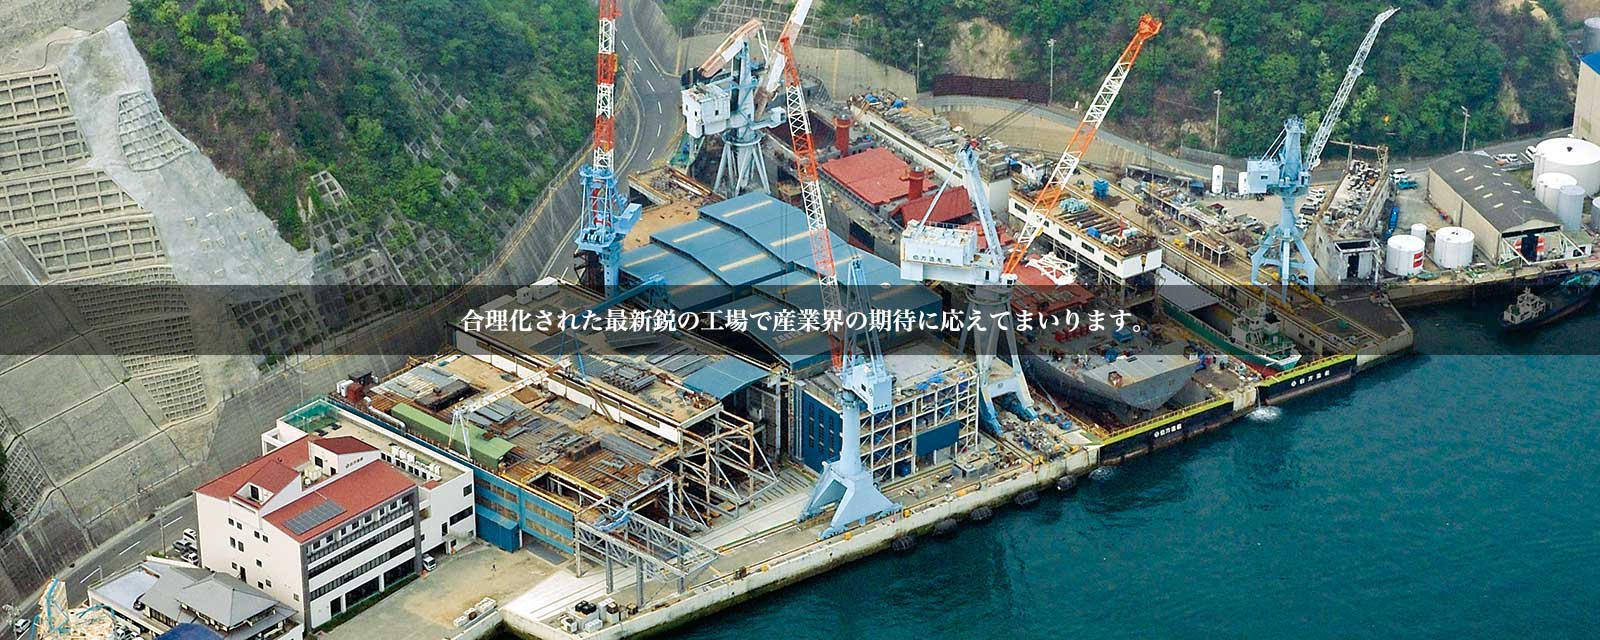 HAKATA SHIPBUILDING CO.,LTD.